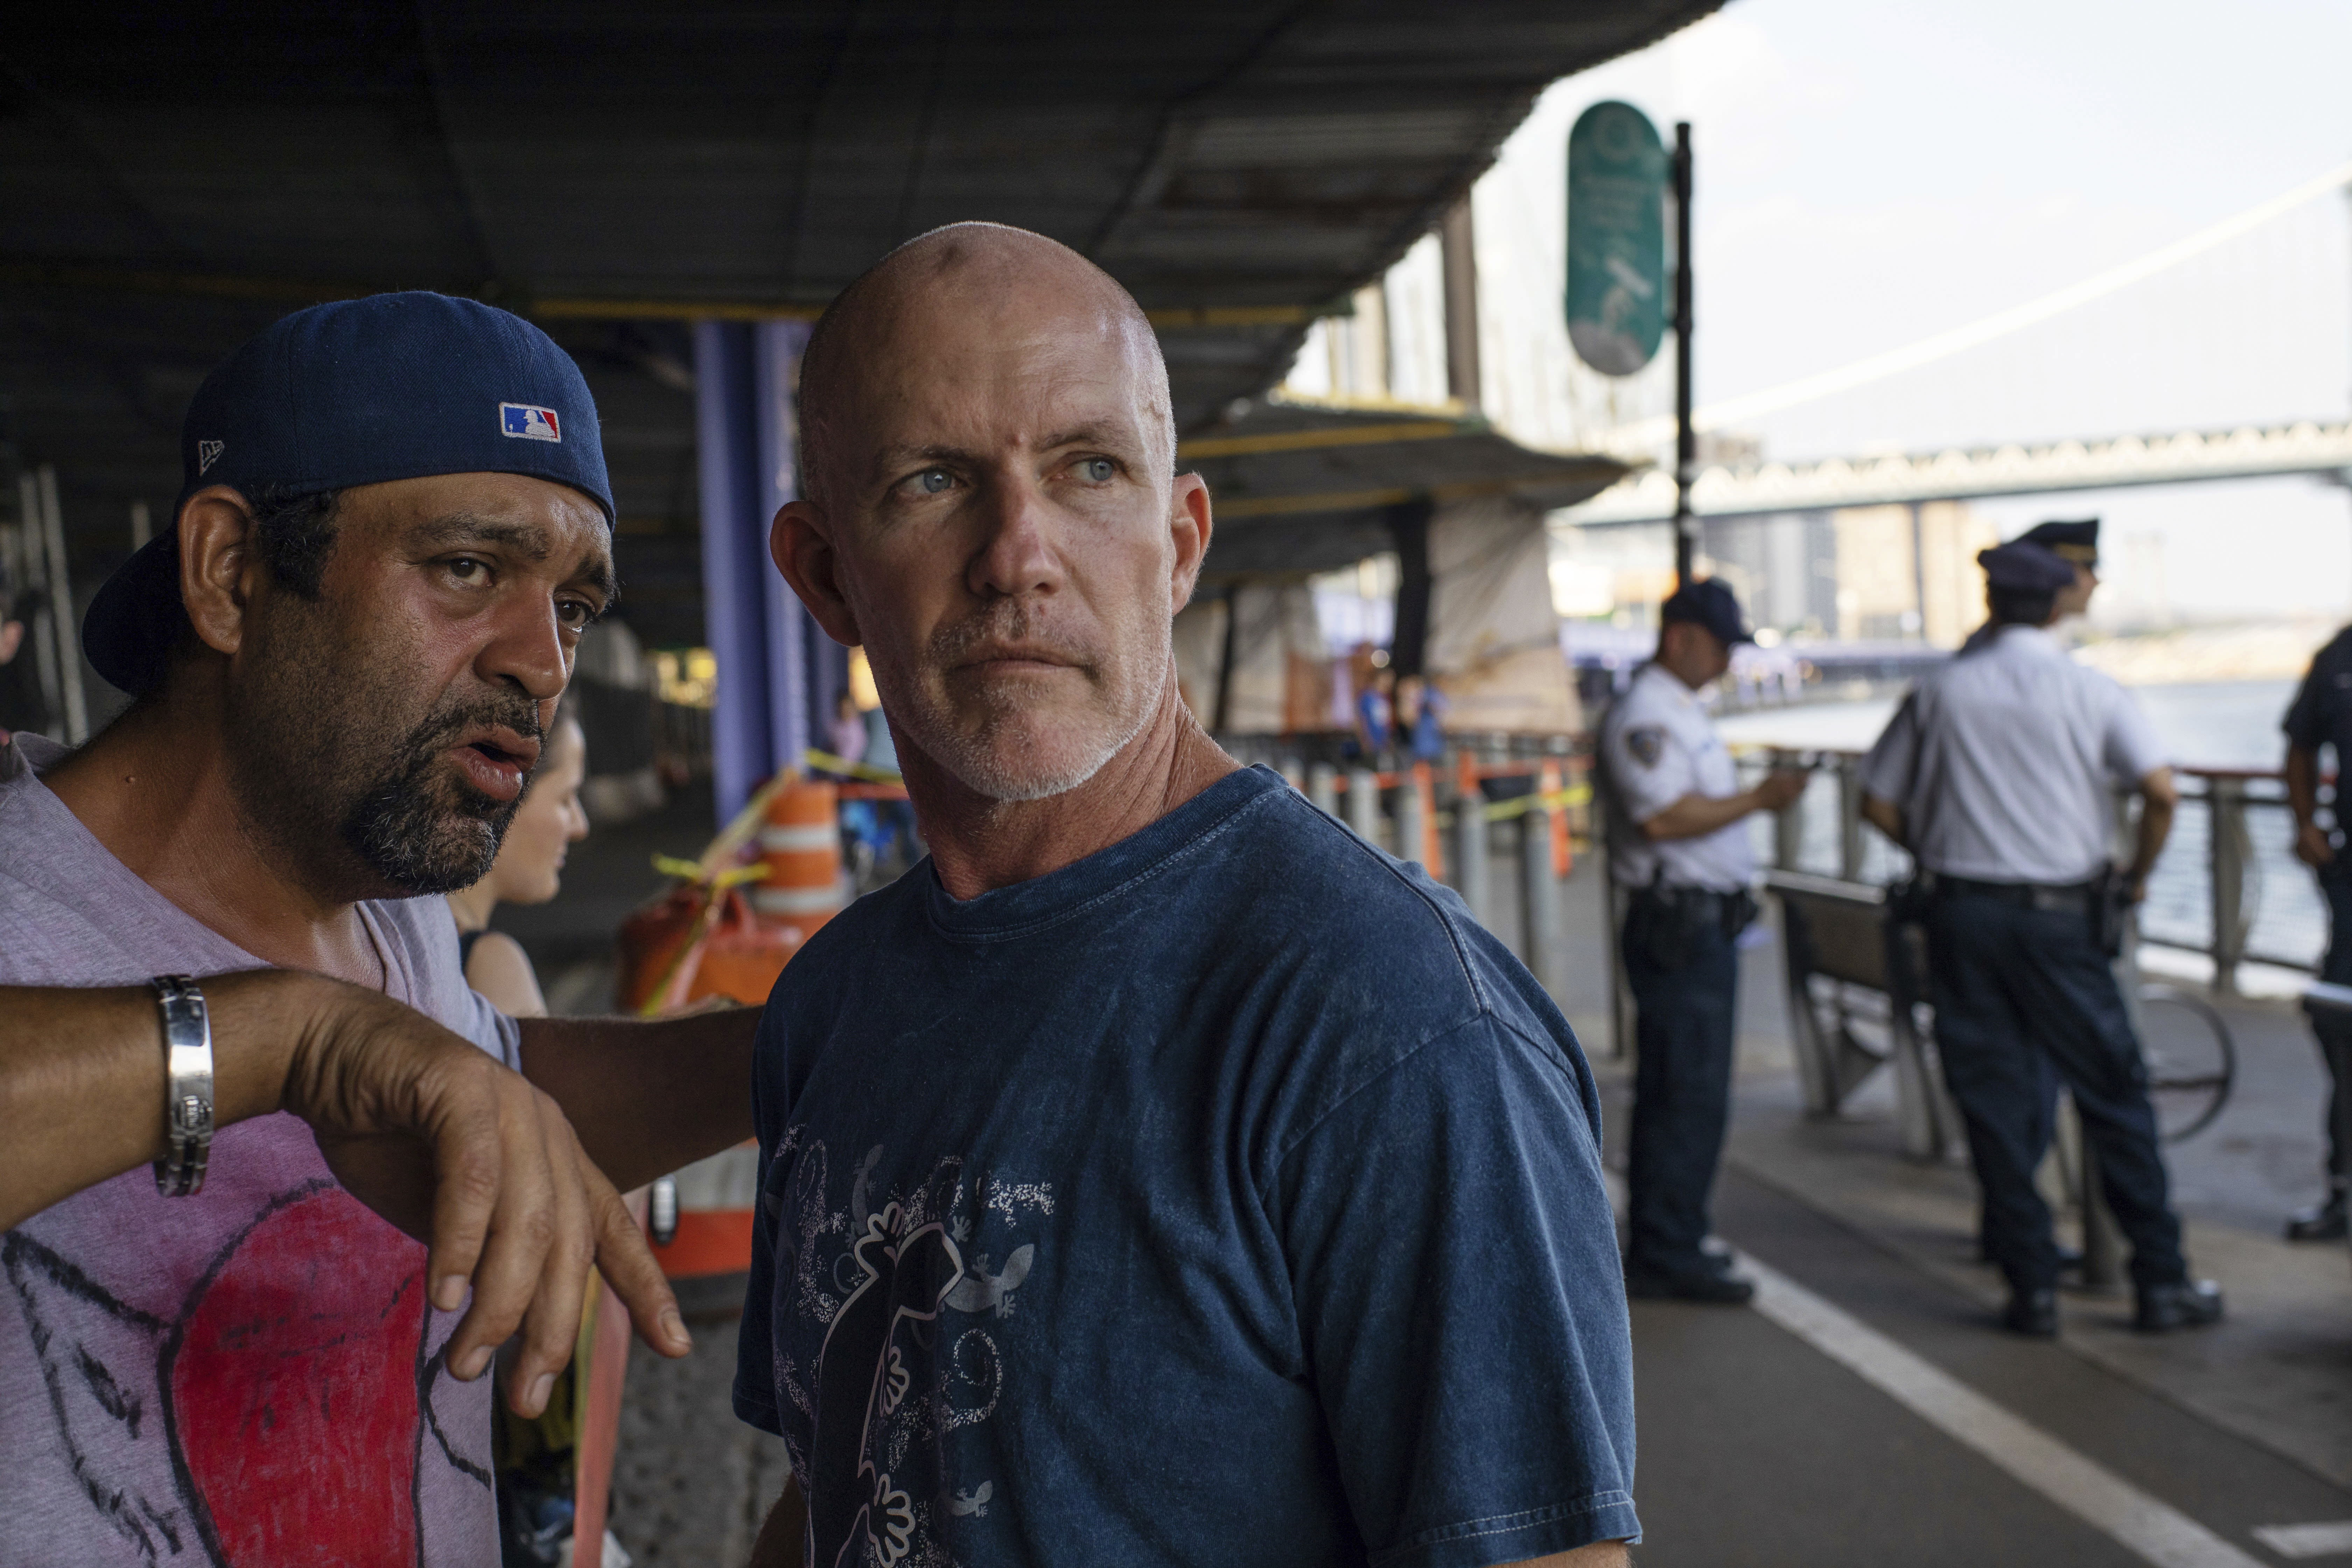 FILE - In this Aug. 5, 2018, file photo, Monte Campbell, of Stillwater, Okla., right, stands under the Brooklyn Bridge in the Manhattan borough after jumping into New York's East River to rescue a baby floating in the East River. A Bronx father hopped a plane to Thailand after carrying his dead 7-month-old baby around New York City in a backpack and tossing the boy's body into the river and other tourist hotspots, police said Wednesday. Campbell waded into shallow water, retrieved the baby and started CPR. (AP Photo/Robert Bumsted, File)